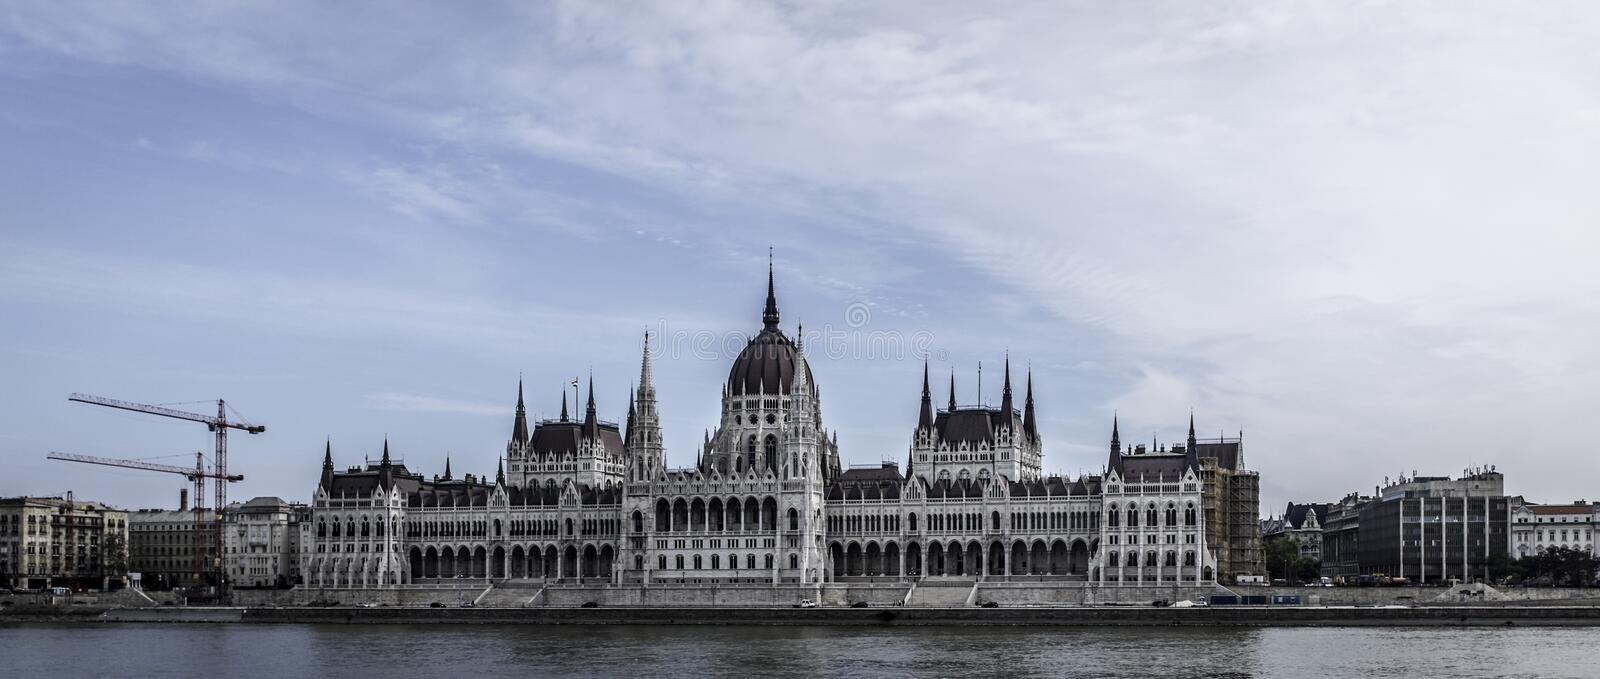 parlament hungarian obrazy royalty free